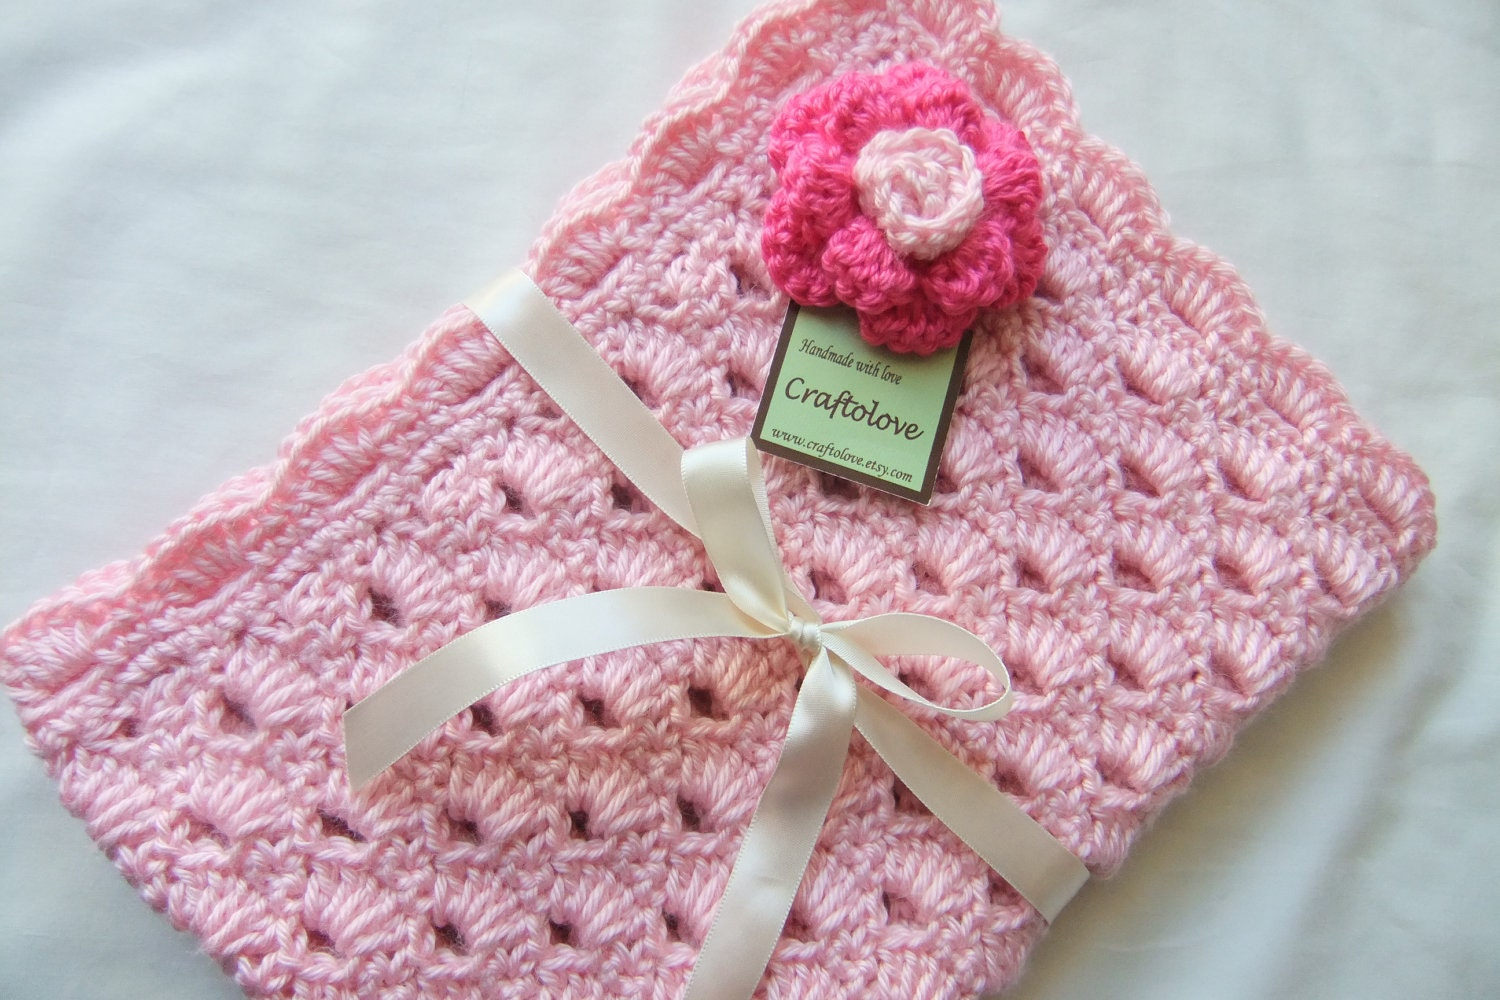 Baby Girl Blanket Crochet baby blanket Sweet Pink by craftolove